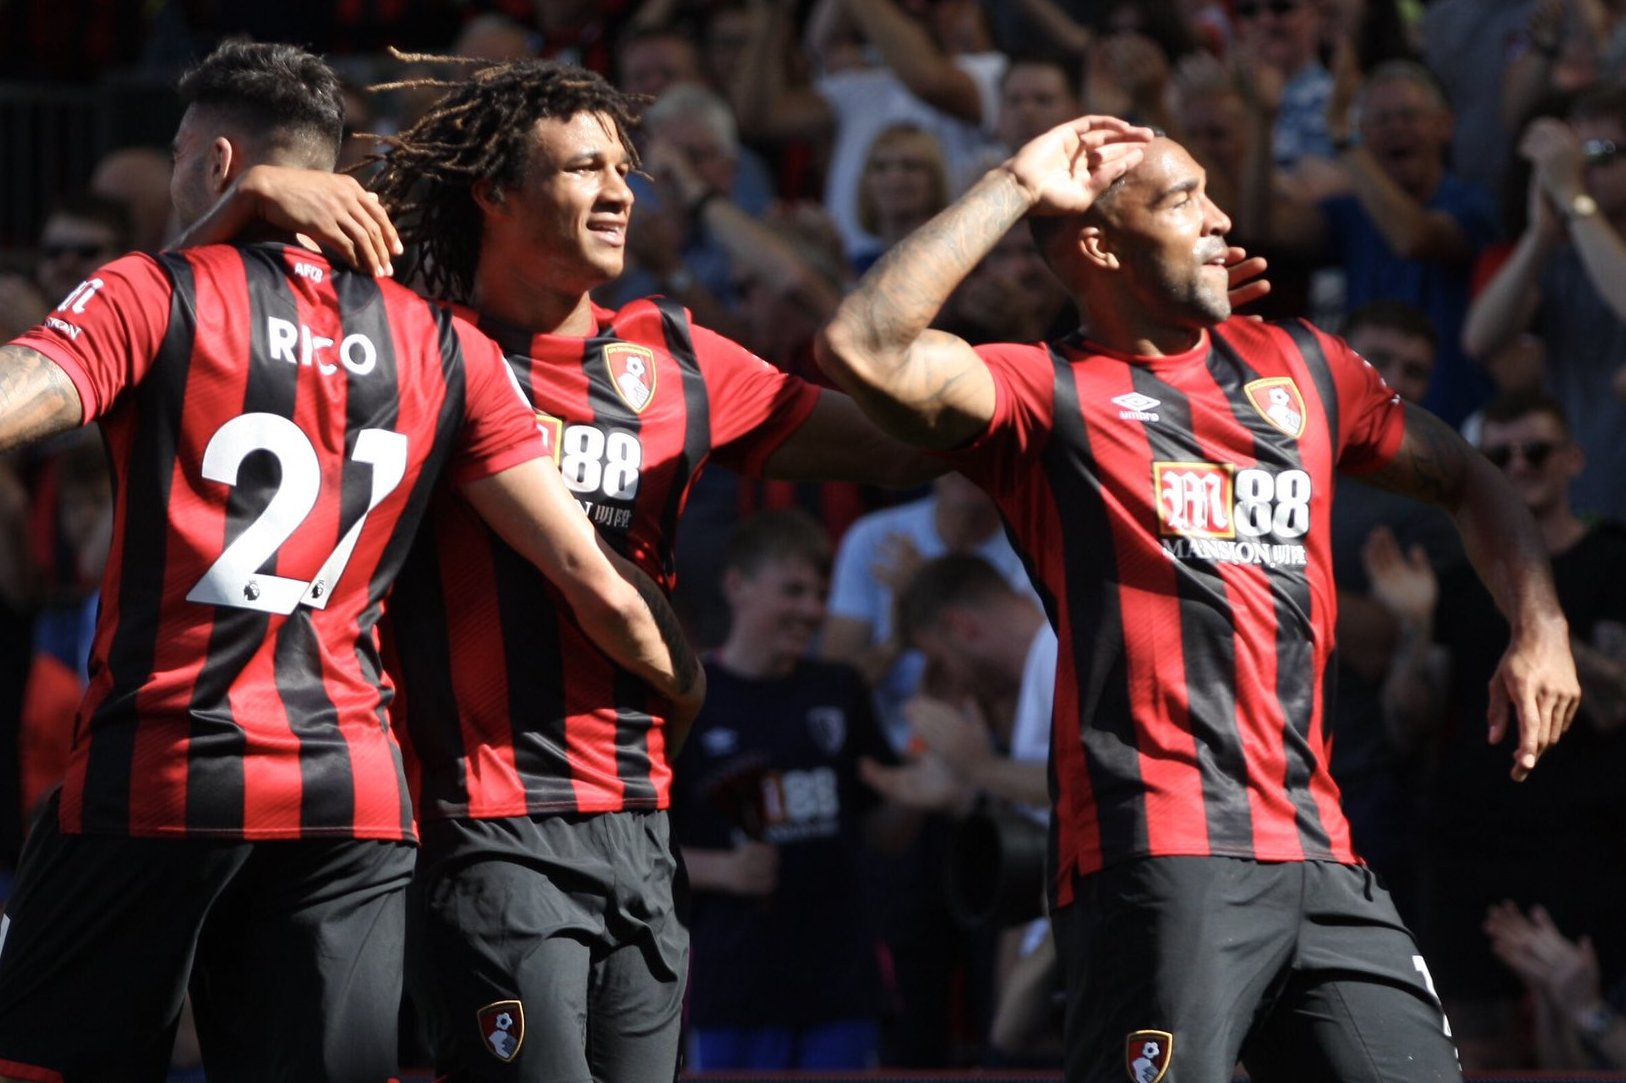 Callum Wilson at the double as AFC Bournemouth ease past Everton